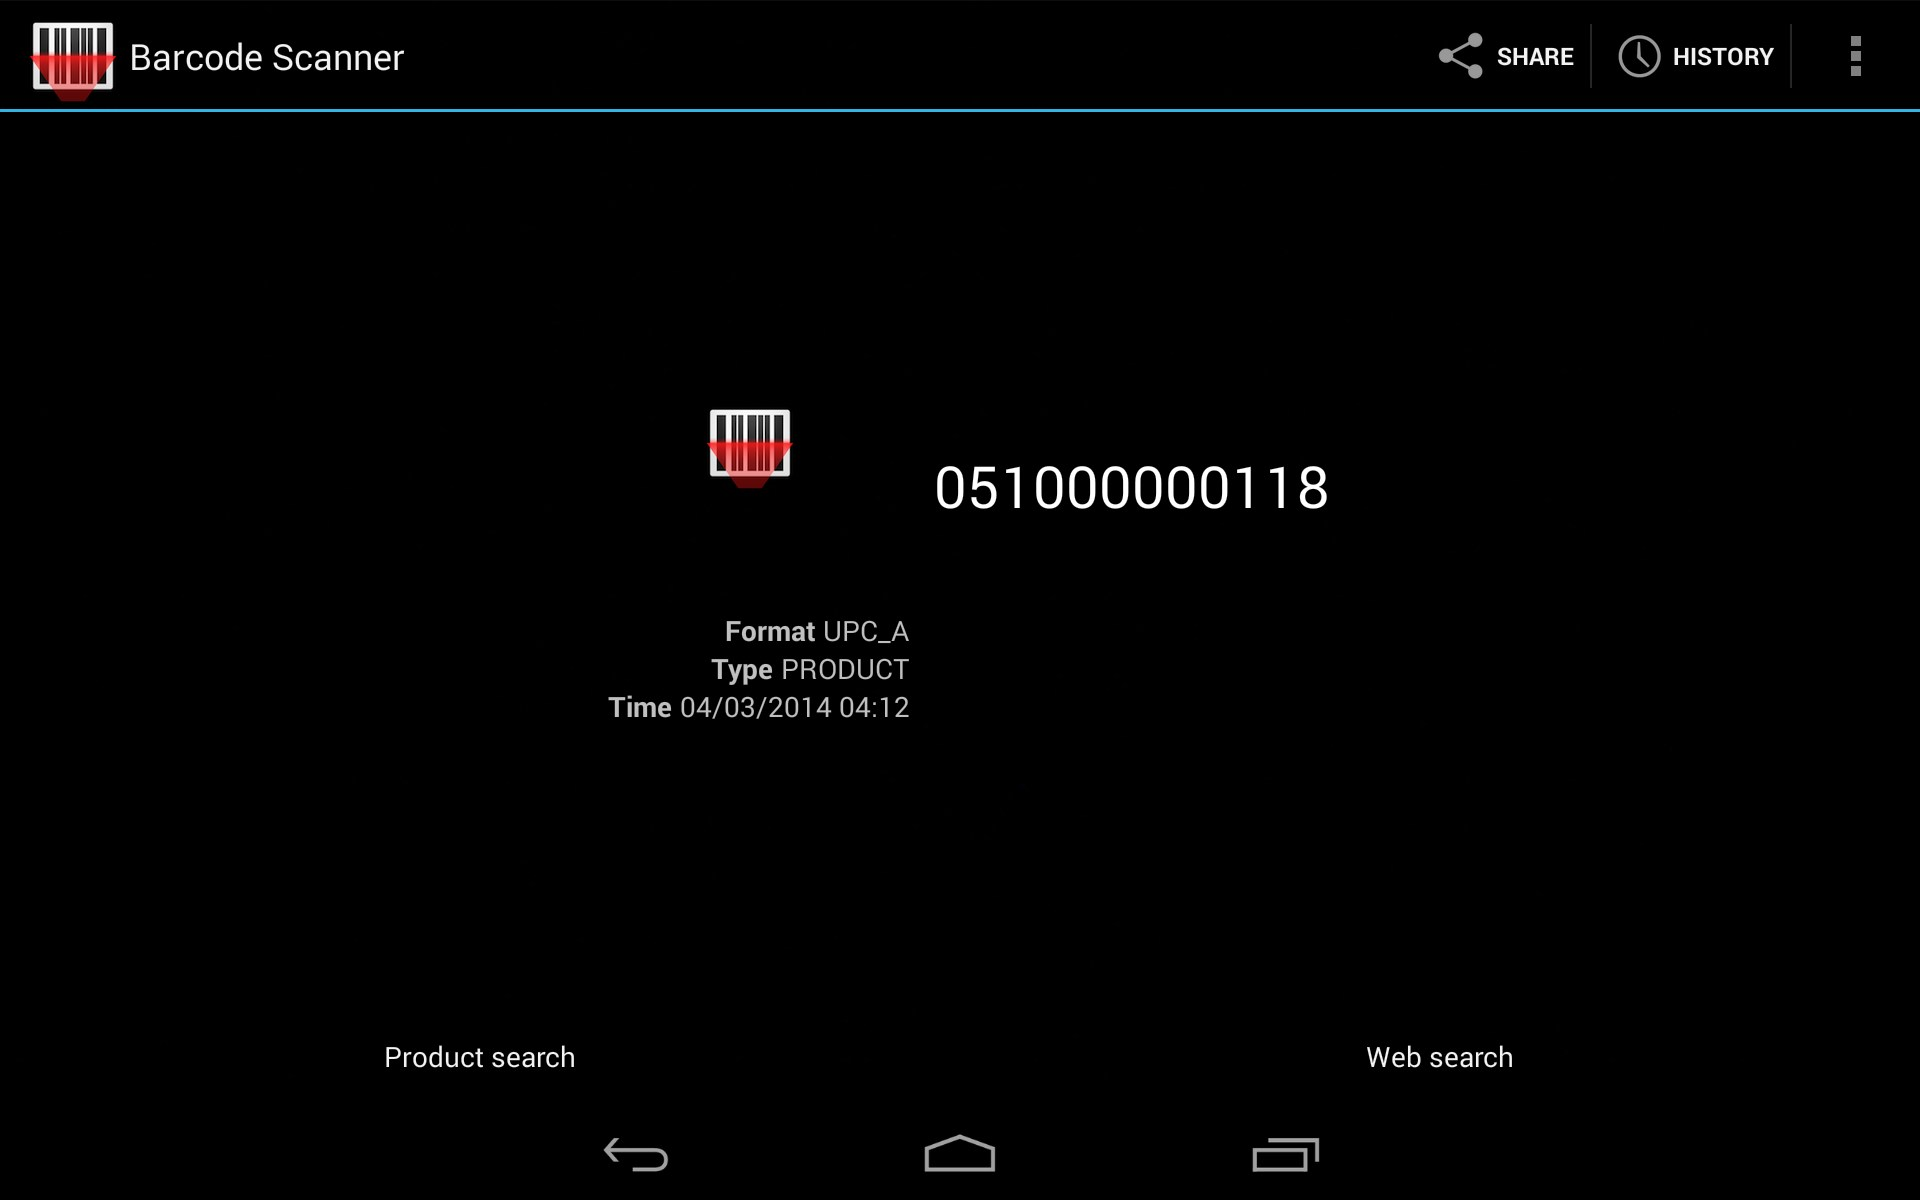 Barcode Scanner for Samsung Galaxy Note 3